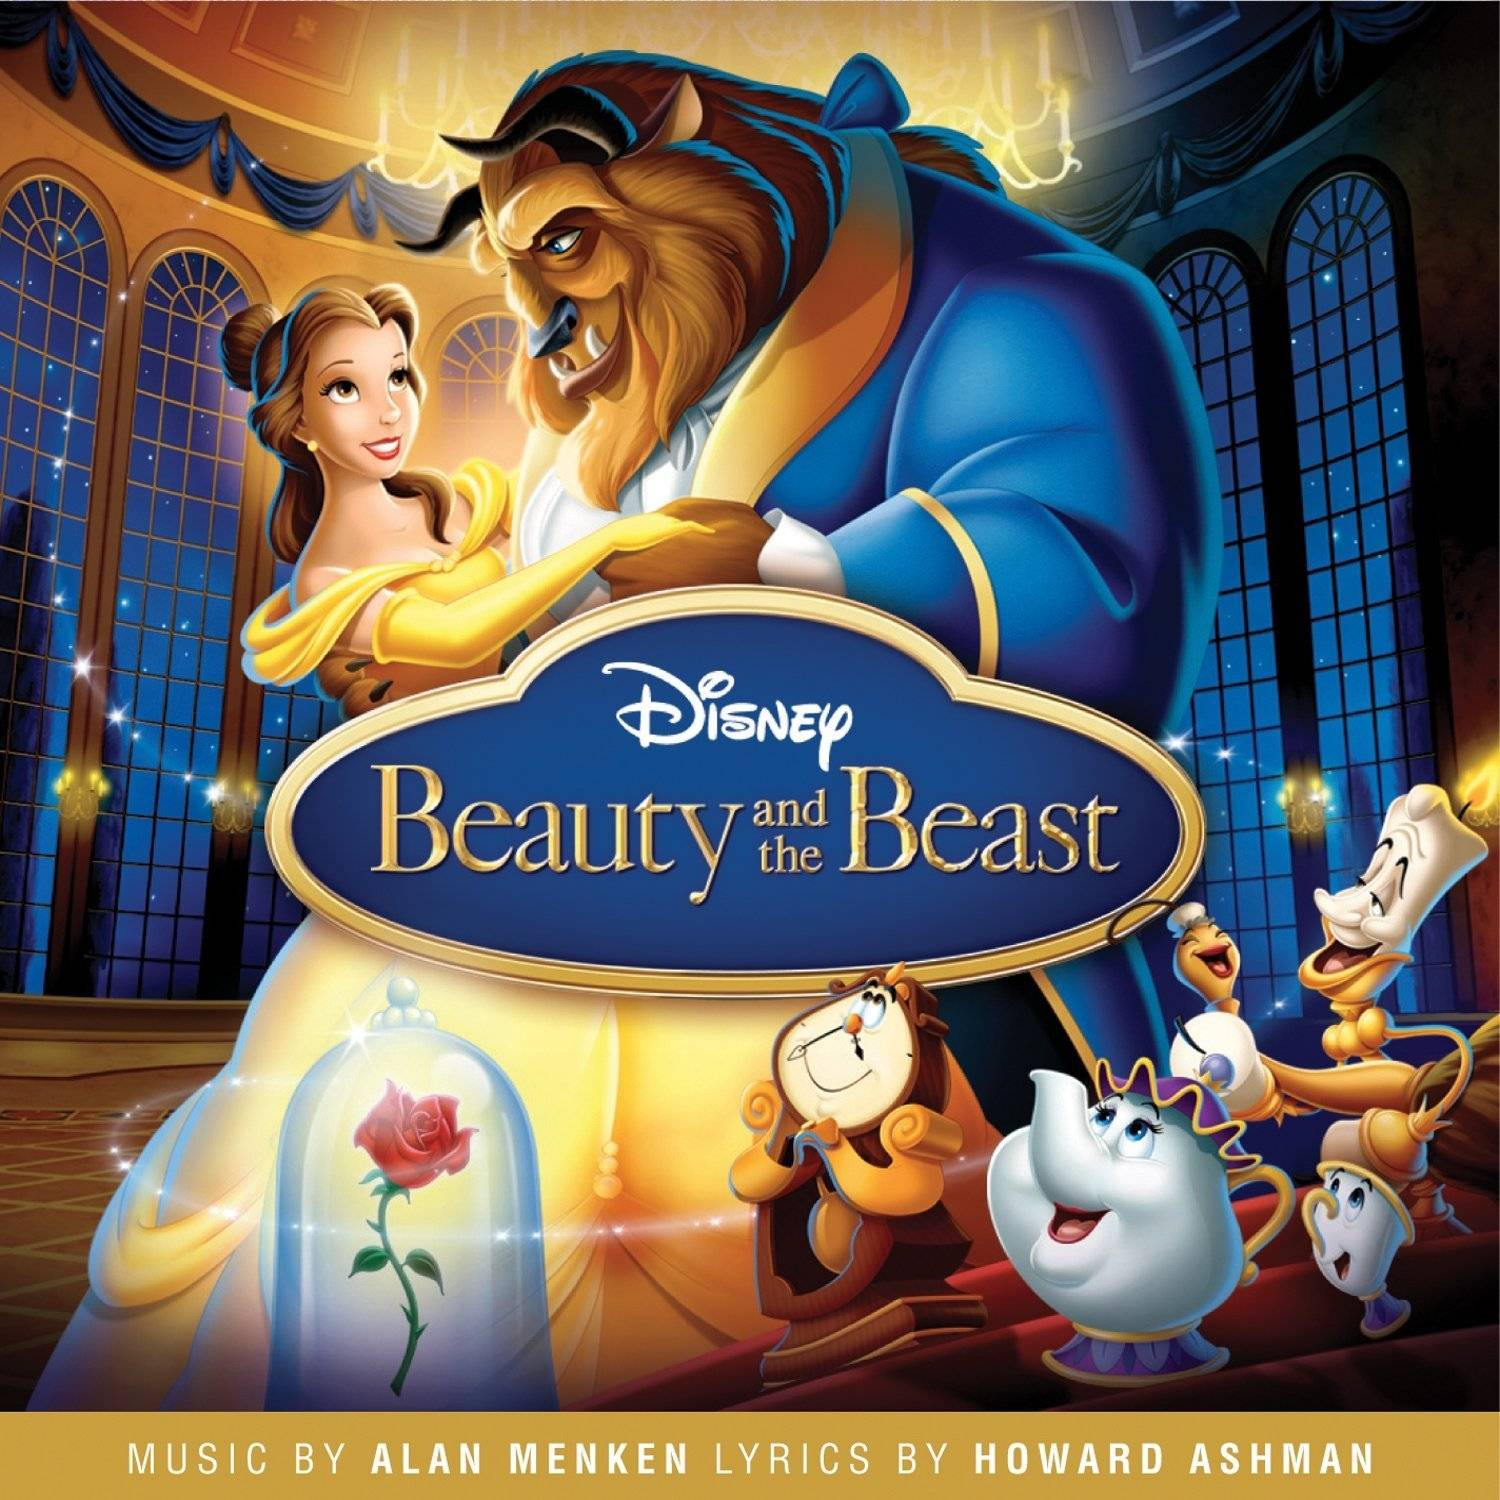 415865-soundtracks-beauty-and-the-beast-soundtrack-cover_0.jpg